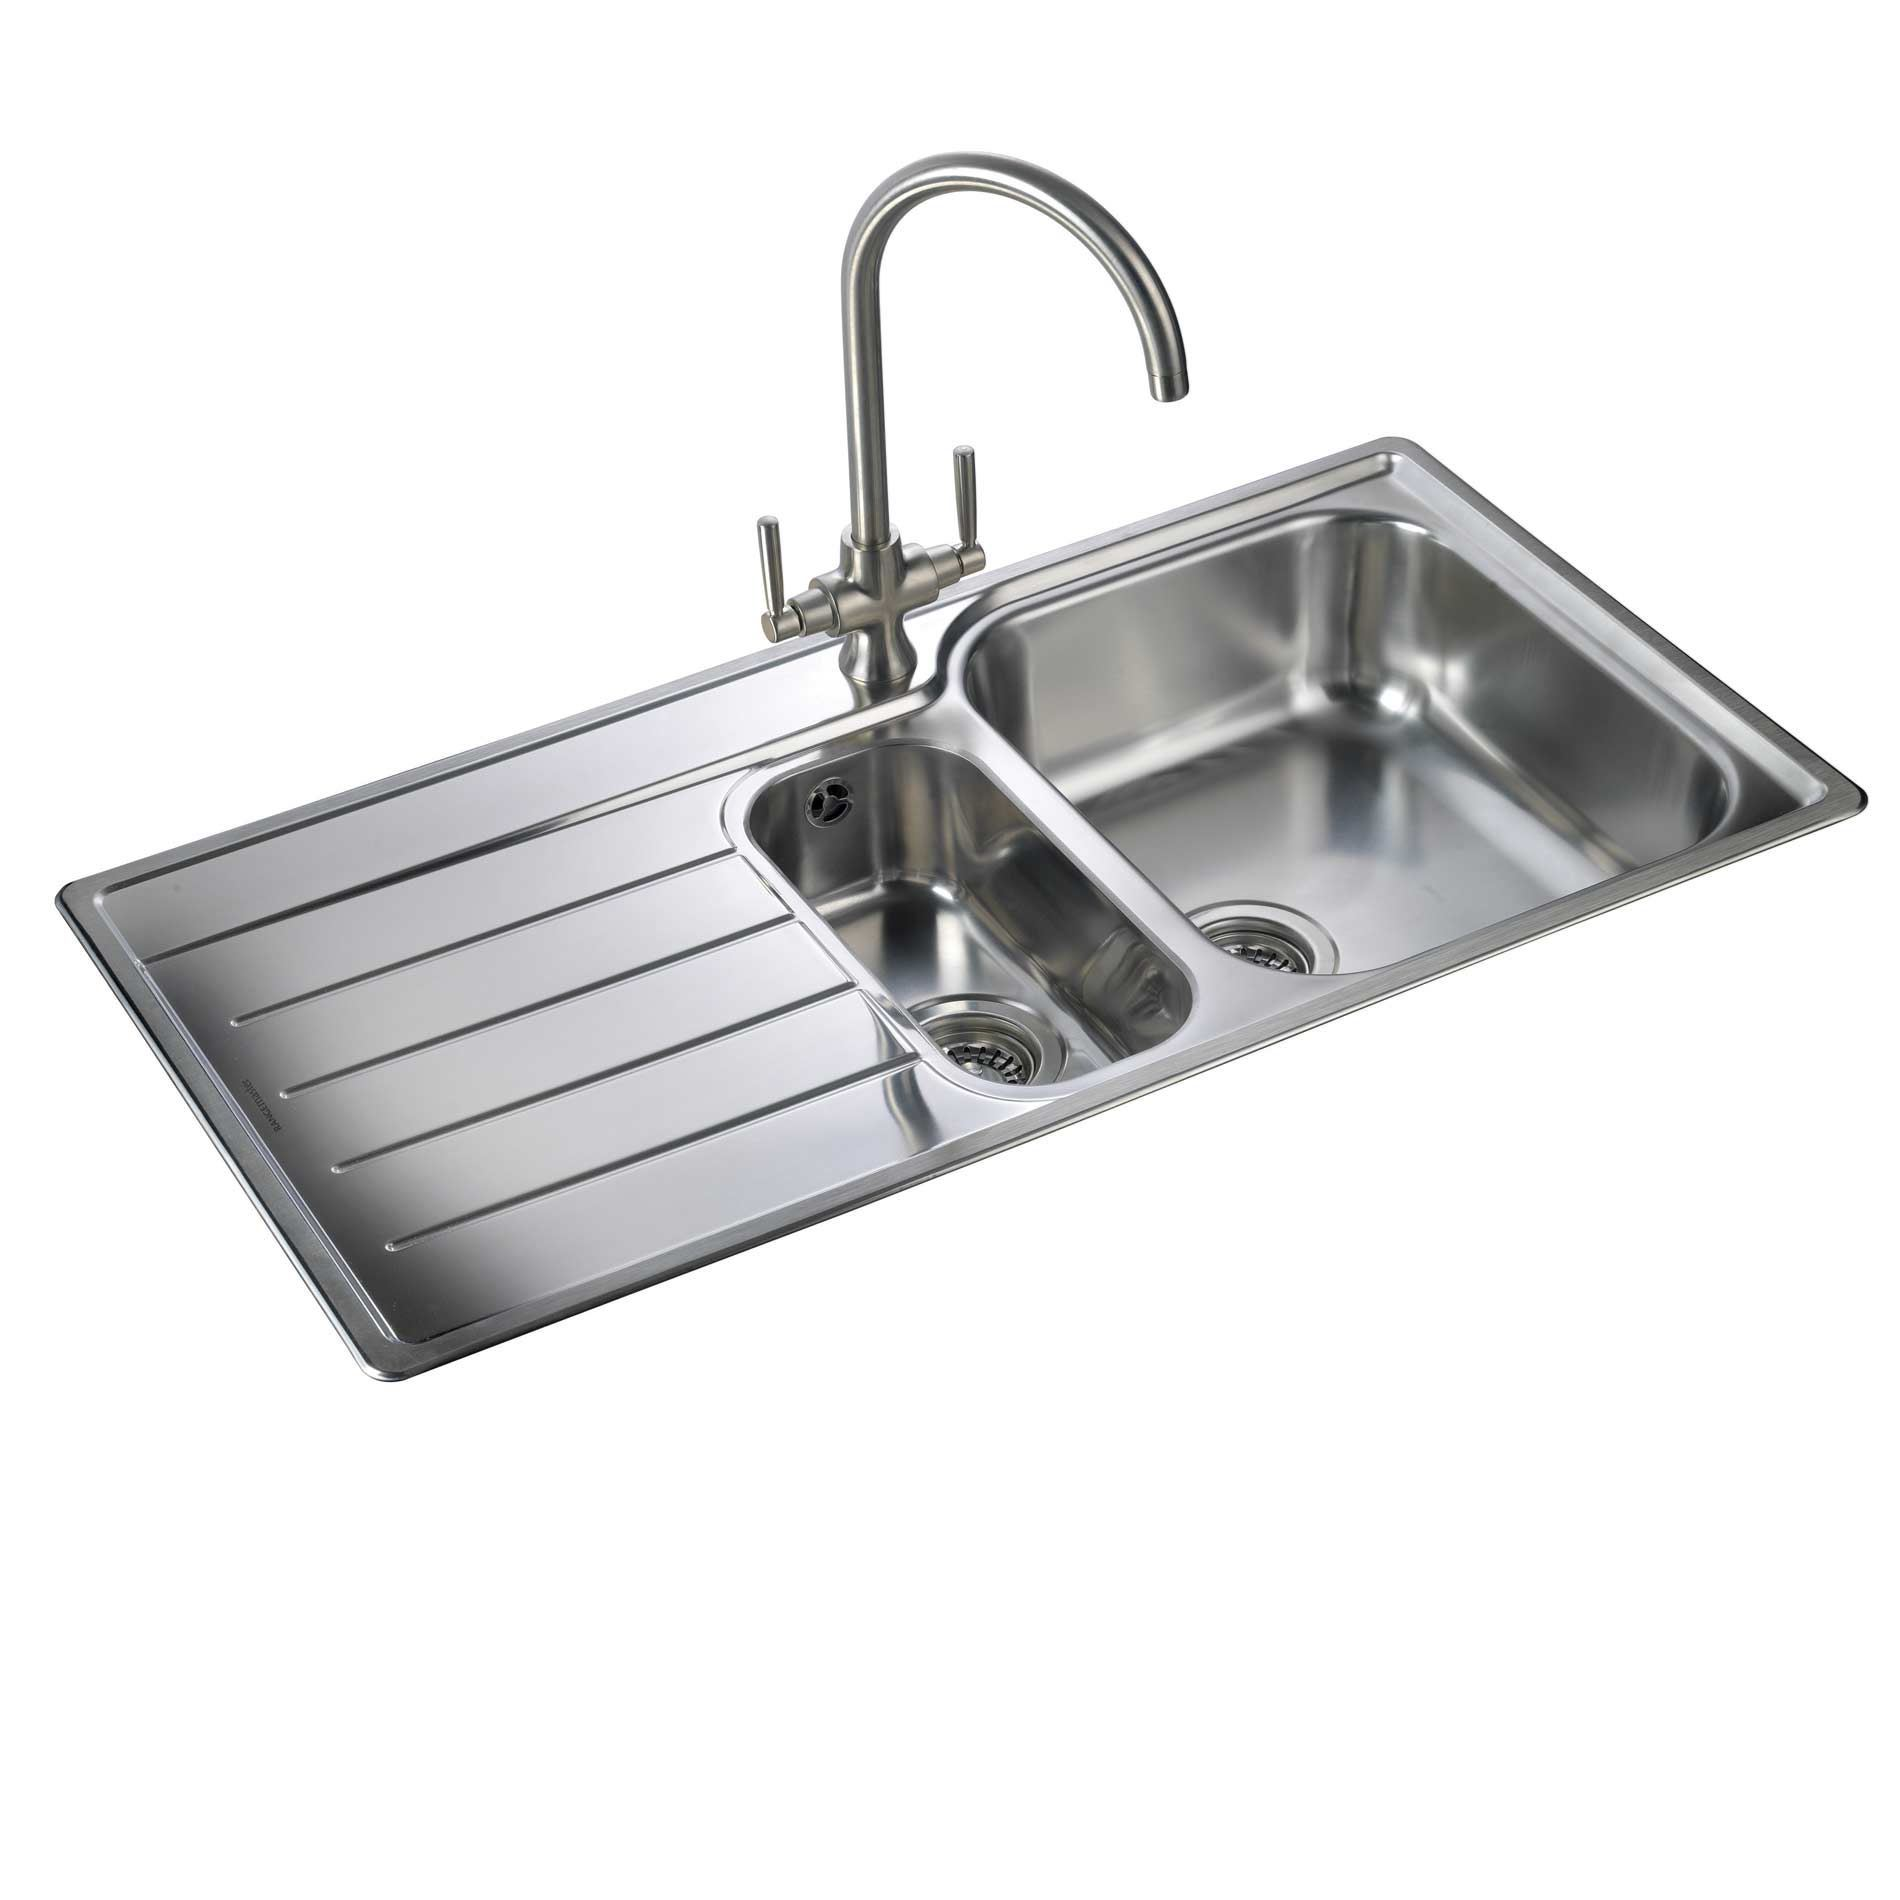 Rangemaster: Oakland OL9852 Stainless Steel Sink - Kitchen Sinks & on stainless bath sinks, integrated kitchen appliances, stainless steel sinks, stainless corner sink, stainless wash sinks, stainless undermount sinks, stainless vessel sinks, stainless bar sinks, stainless floor sinks, stainless sink clips, stainless trough sink, stainless sink grids, bar sinks, stainless farmhouse sink for remodel, big stainless sinks, polished concrete sinks, stainless restaurant sink, bathroom sinks, stainless vanity sinks, stainless mop sink, kitchen stainless steel sinks, stainless bathroom faucets, countertop sinks, stainless steel basins,